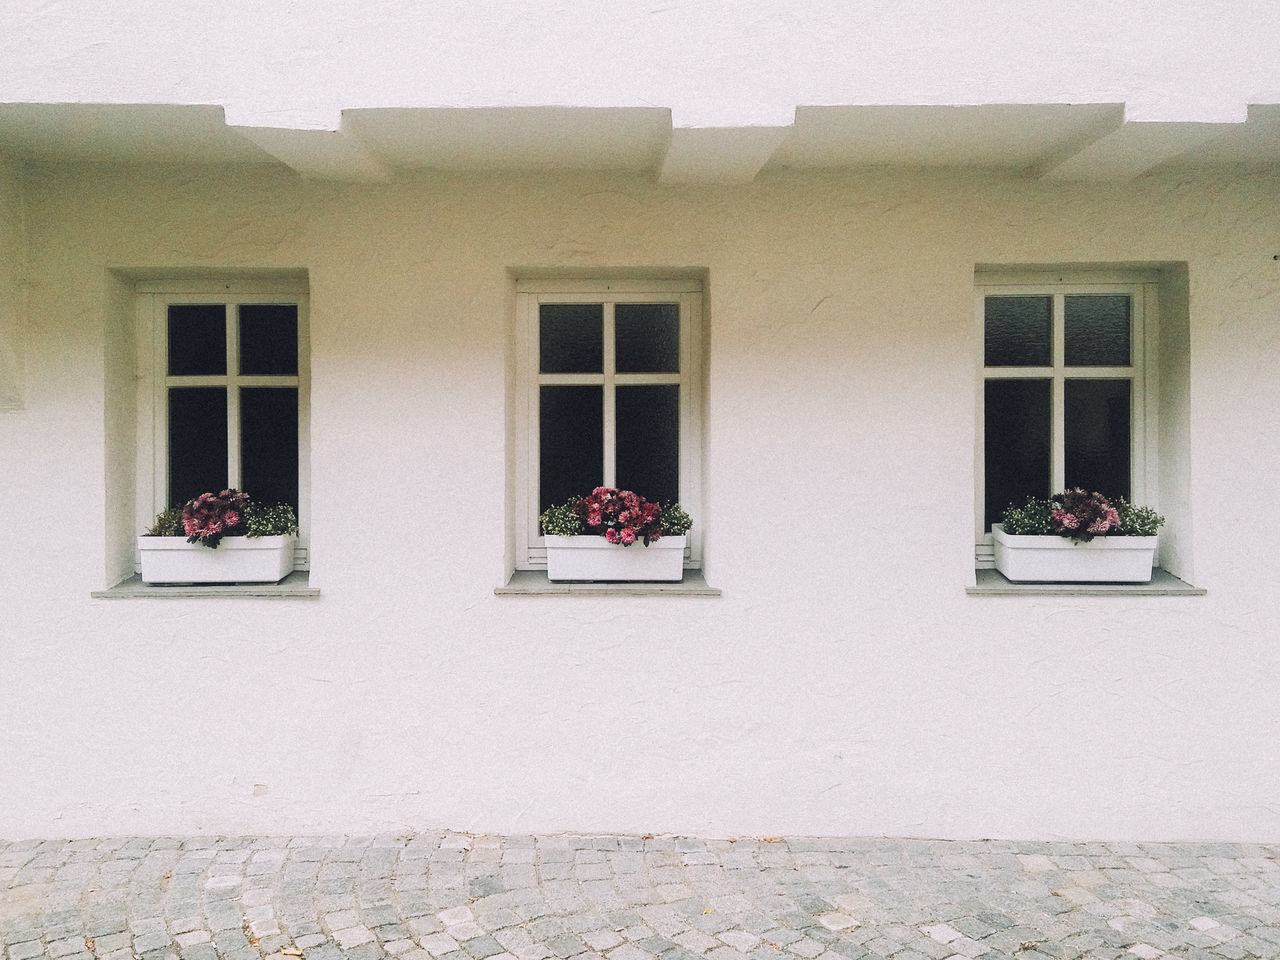 Three window and flowers Window Building Exterior Built Structure Architecture No People Outdoors Day Flowers